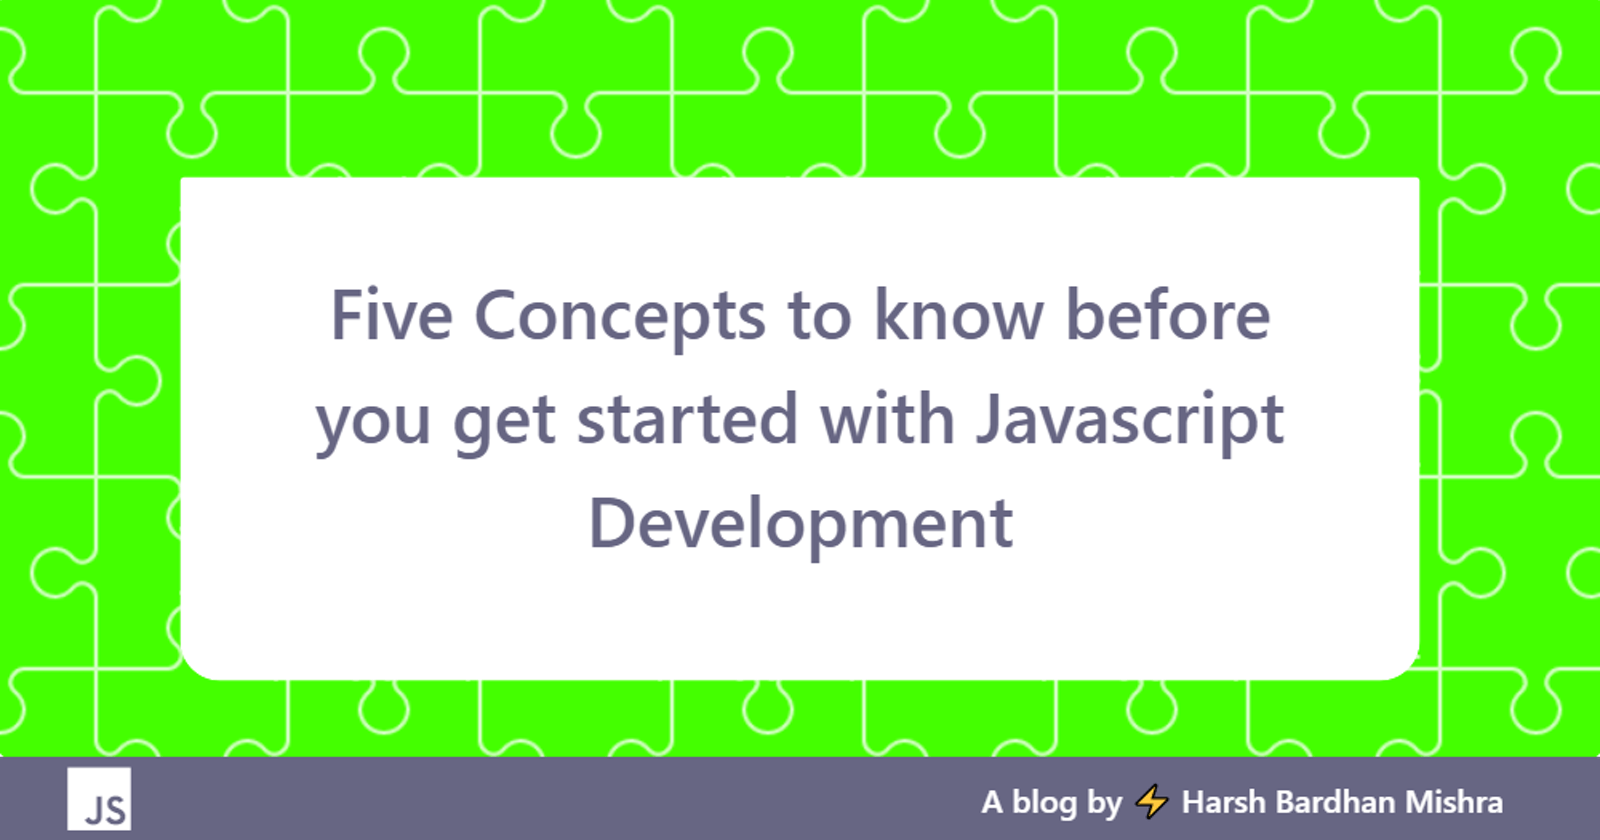 Five Concepts to know before you get started with Javascript Development